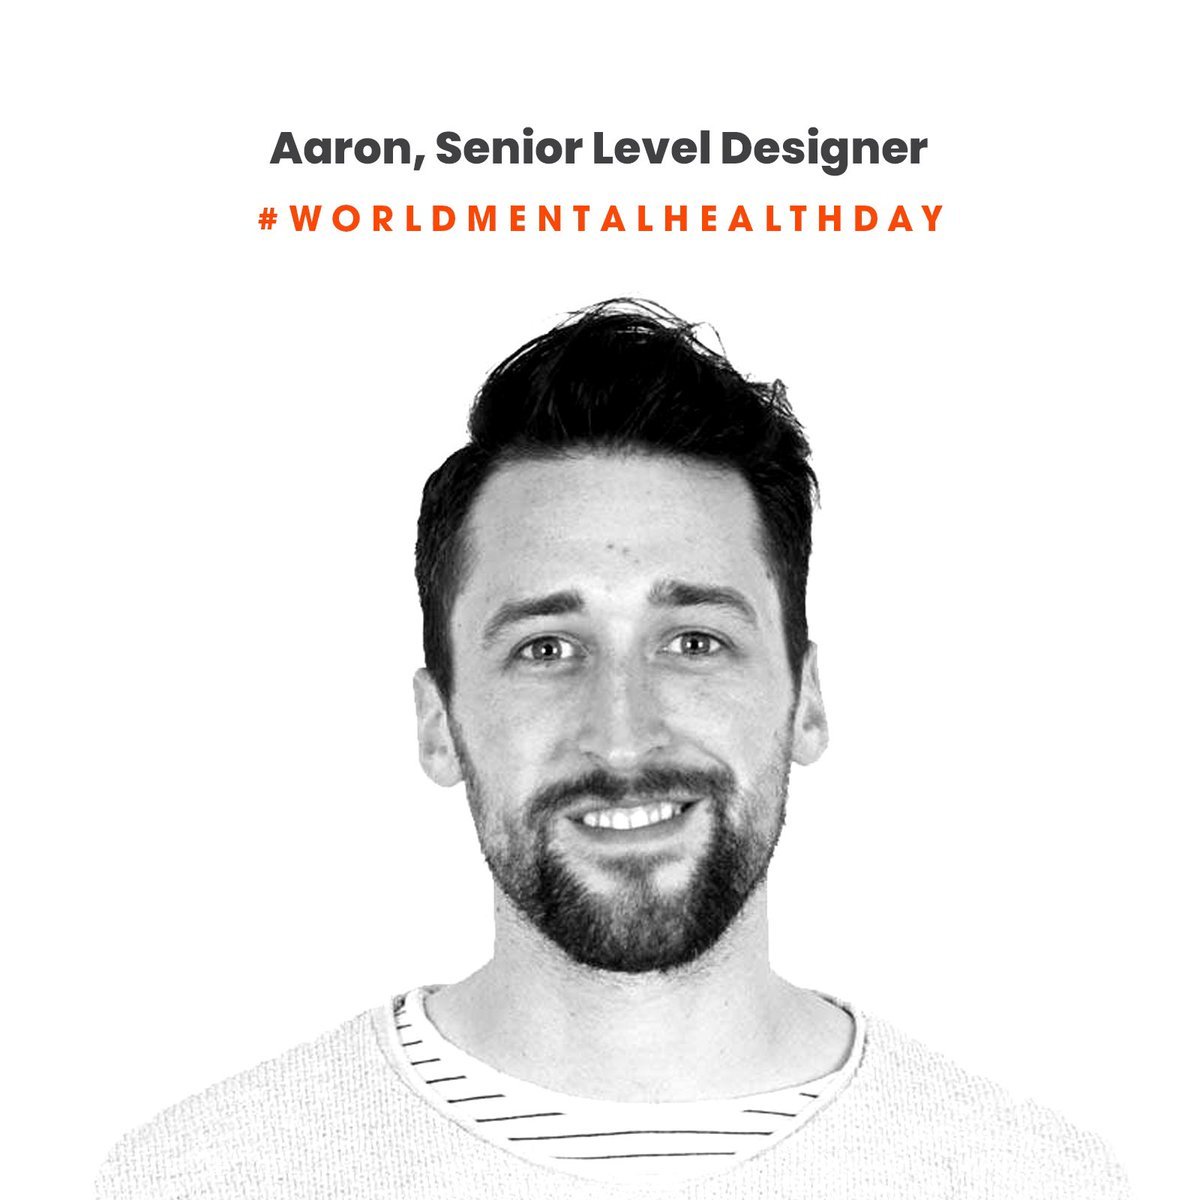 For the second of our #worldmentalhealthday chats with the Playground Games team we have Aaron. Remember to take a moment to reflect and ask yourself, as well as others, how are we doing. https://t.co/d7cyRvdq6U